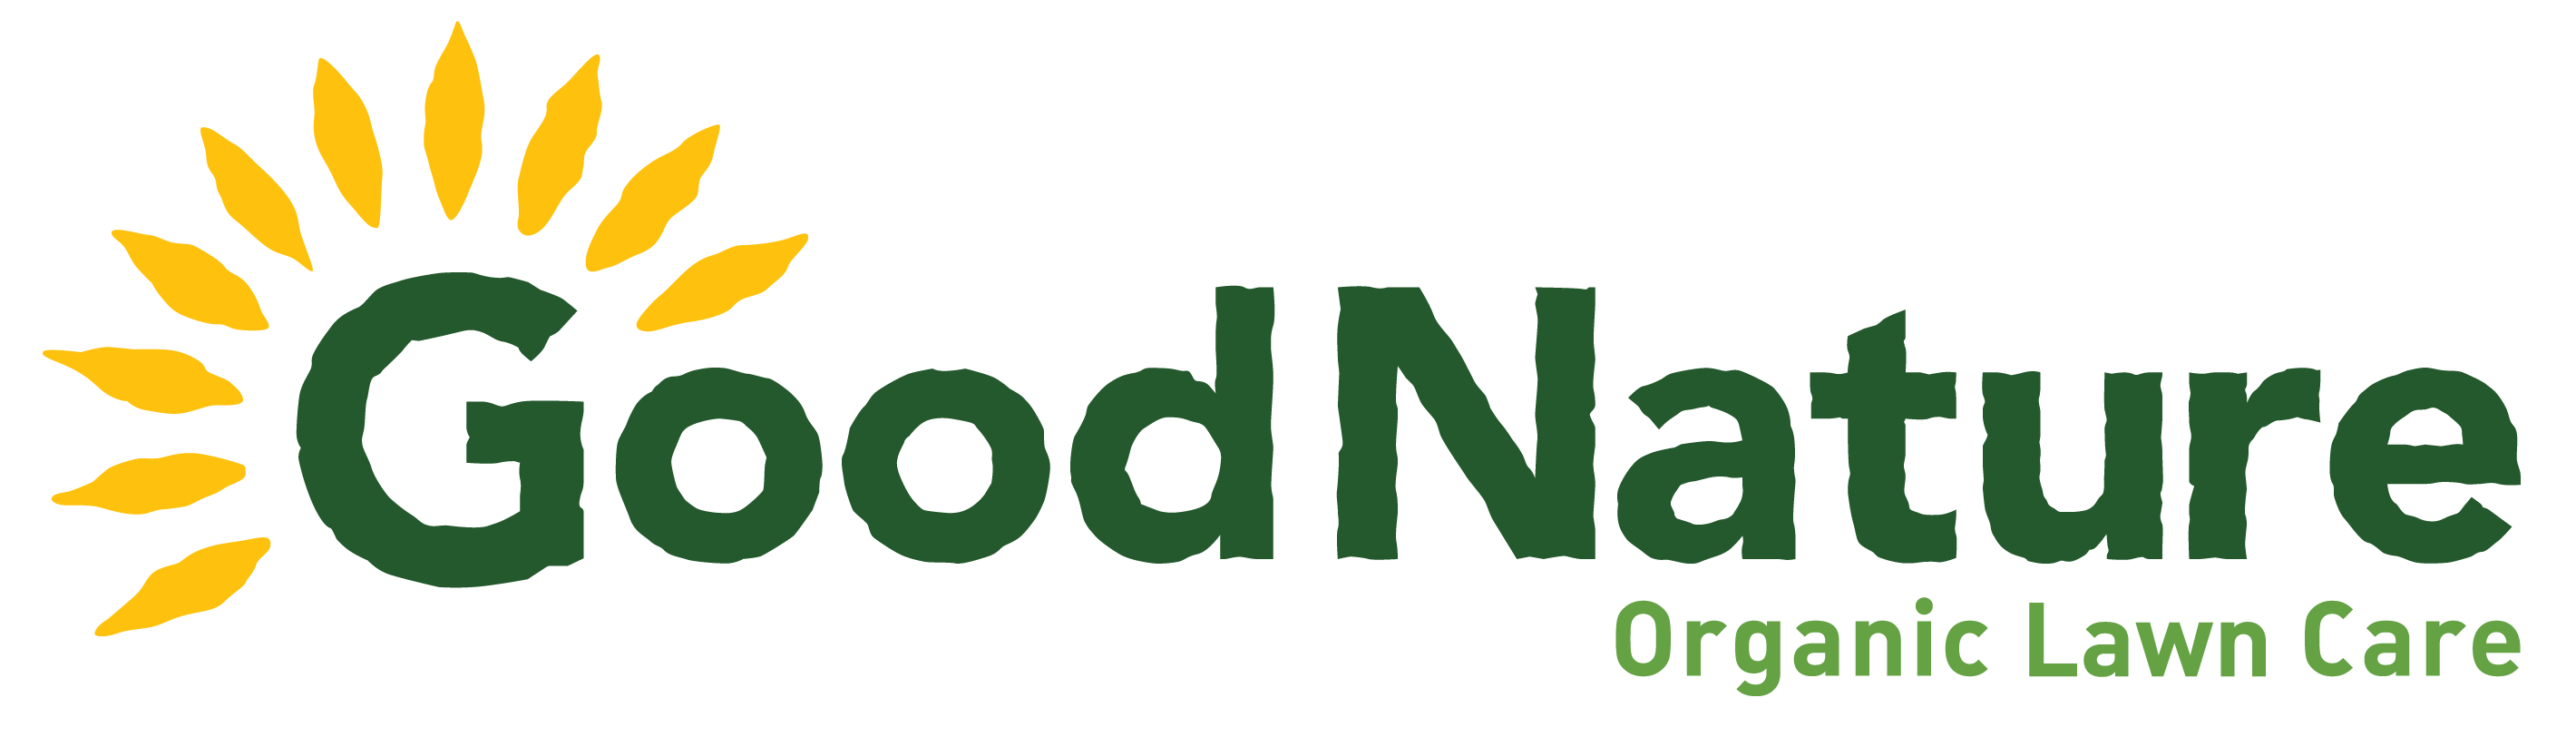 GoodNature_HorizontalLogo_Transparent